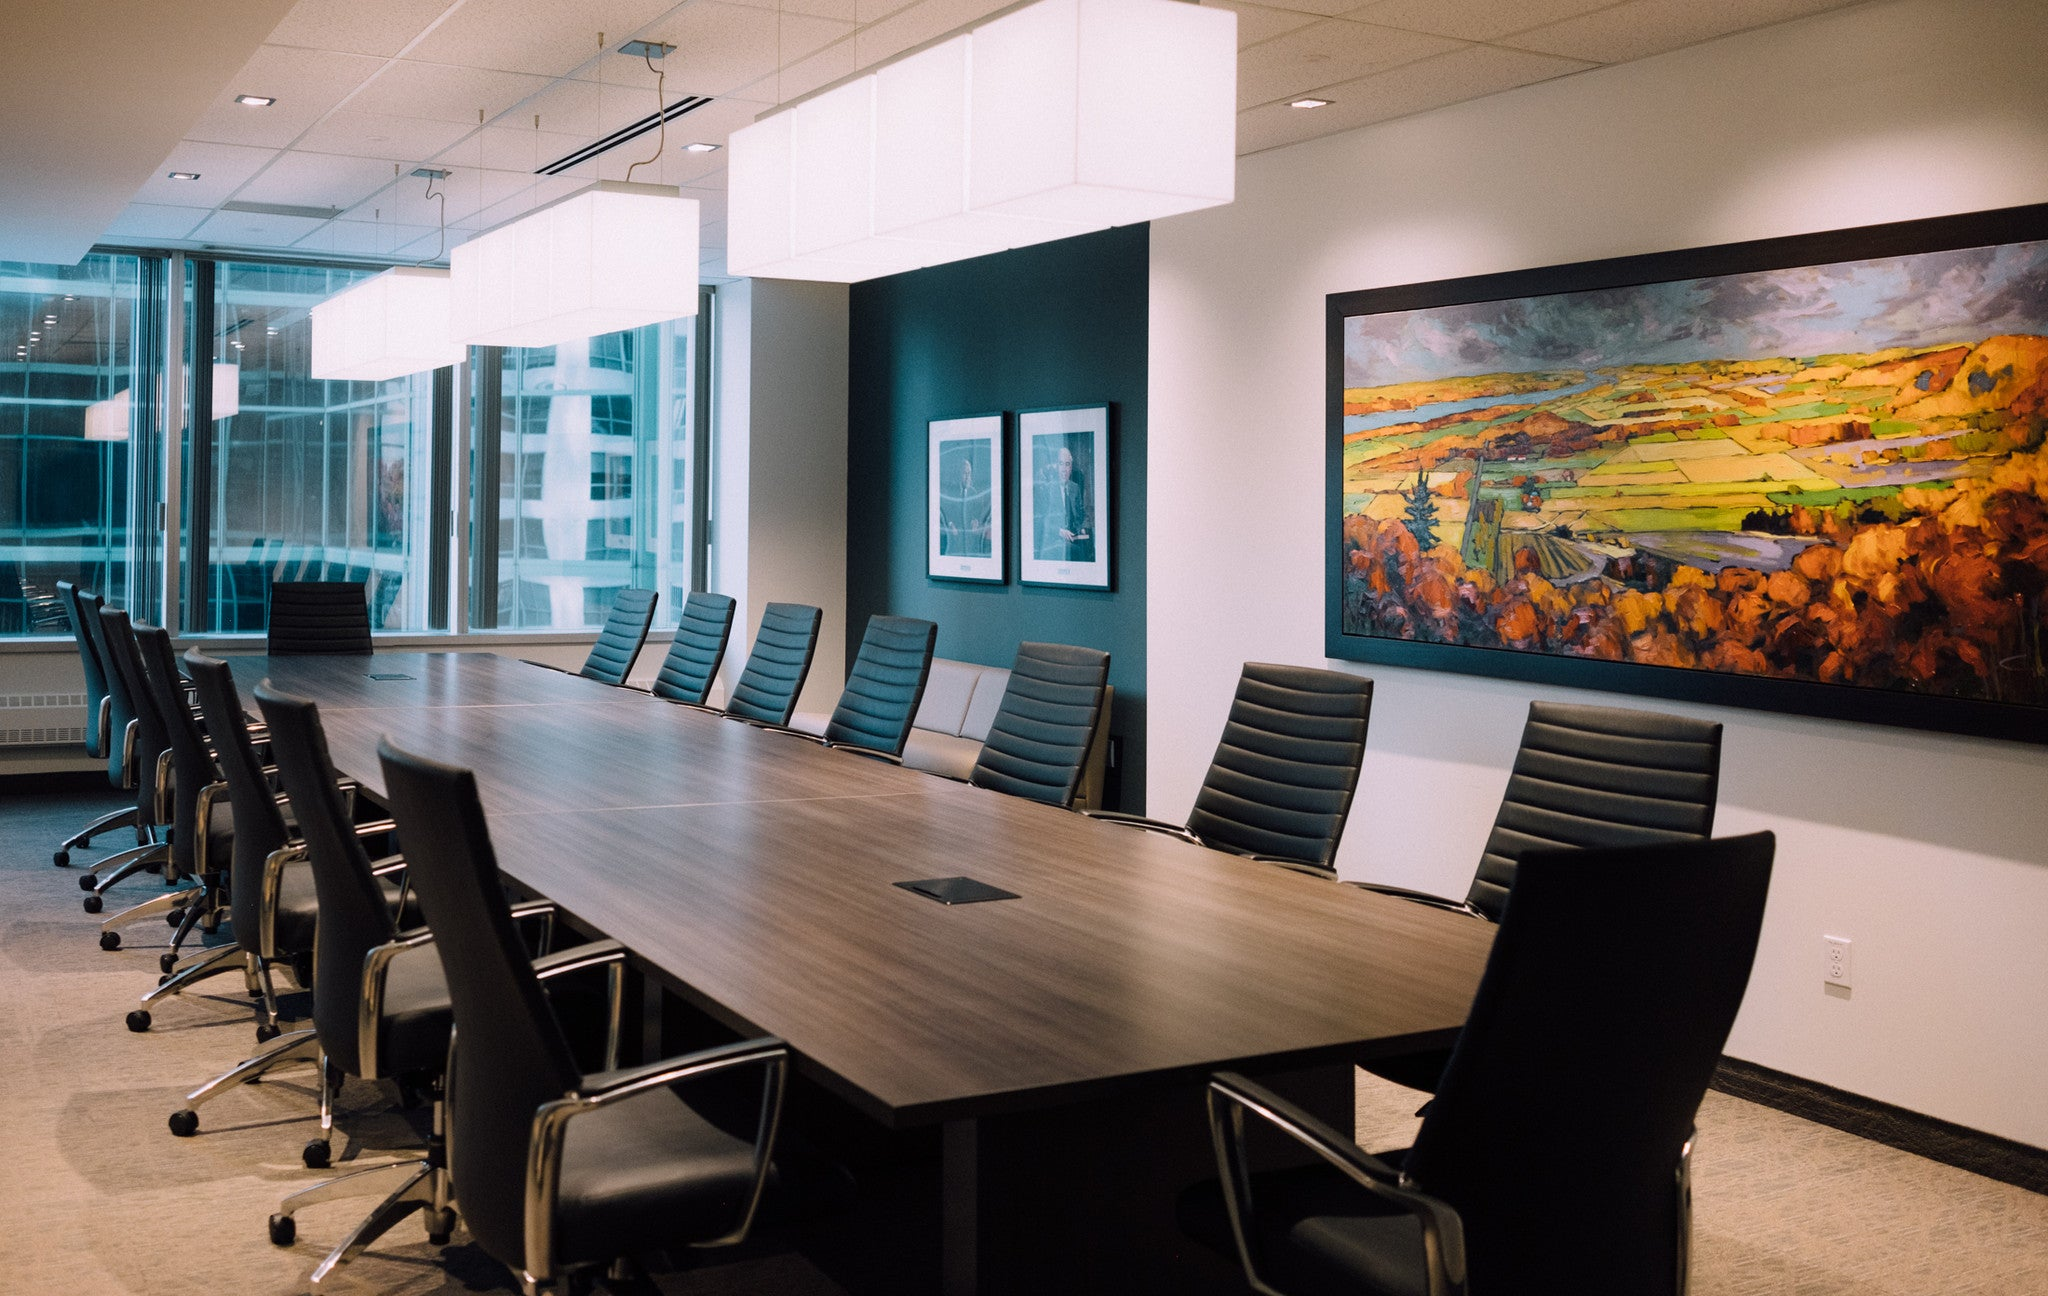 Board room interior design with long table and chairs